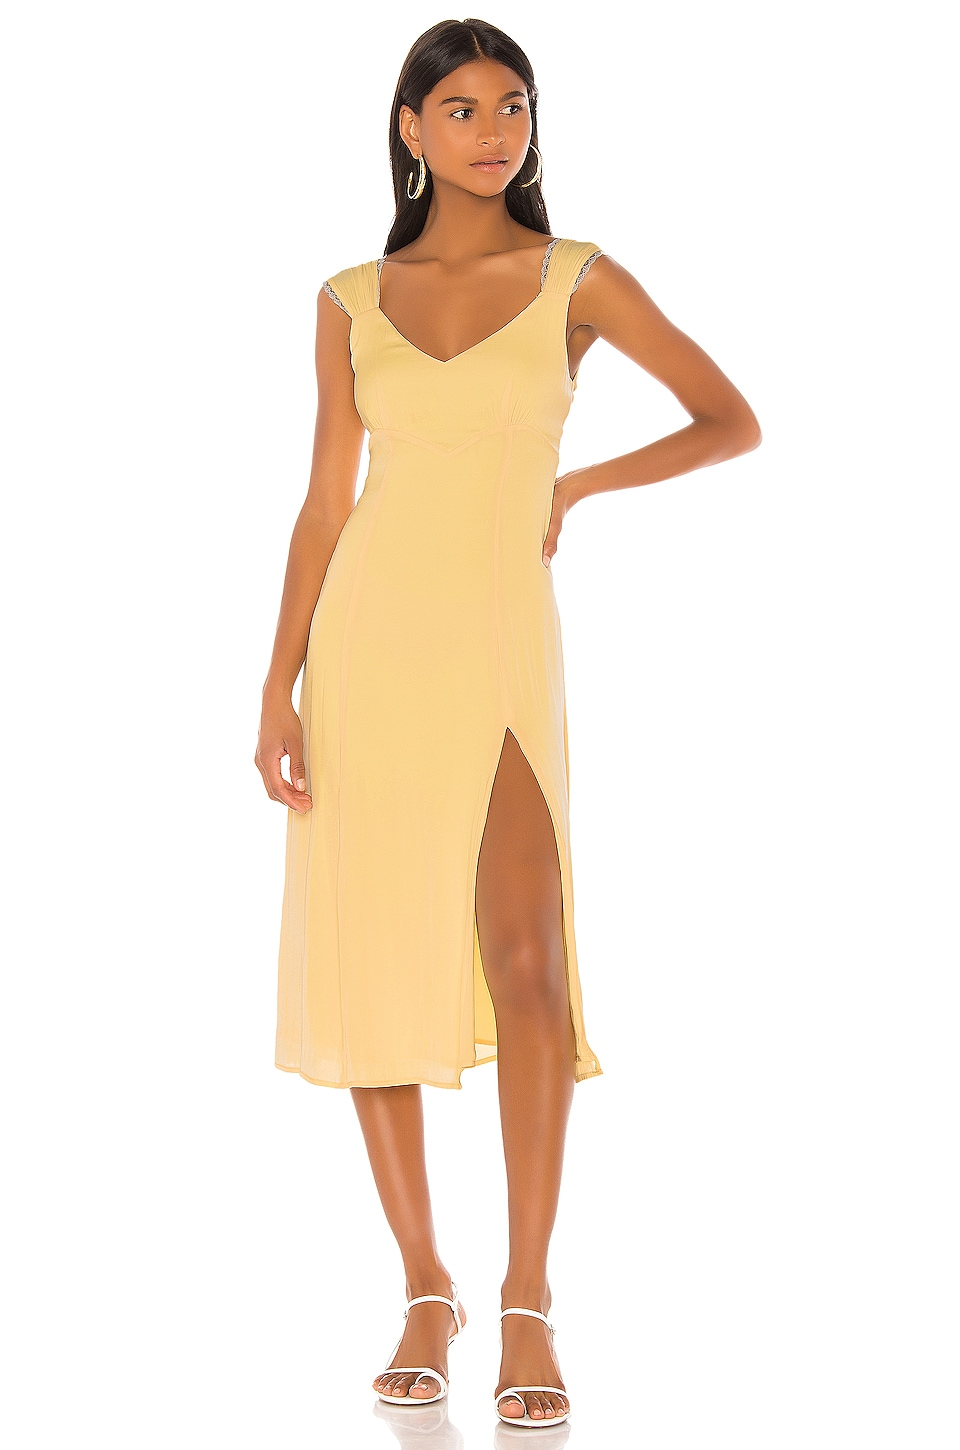 LPA Giovanna Dress in Yellow